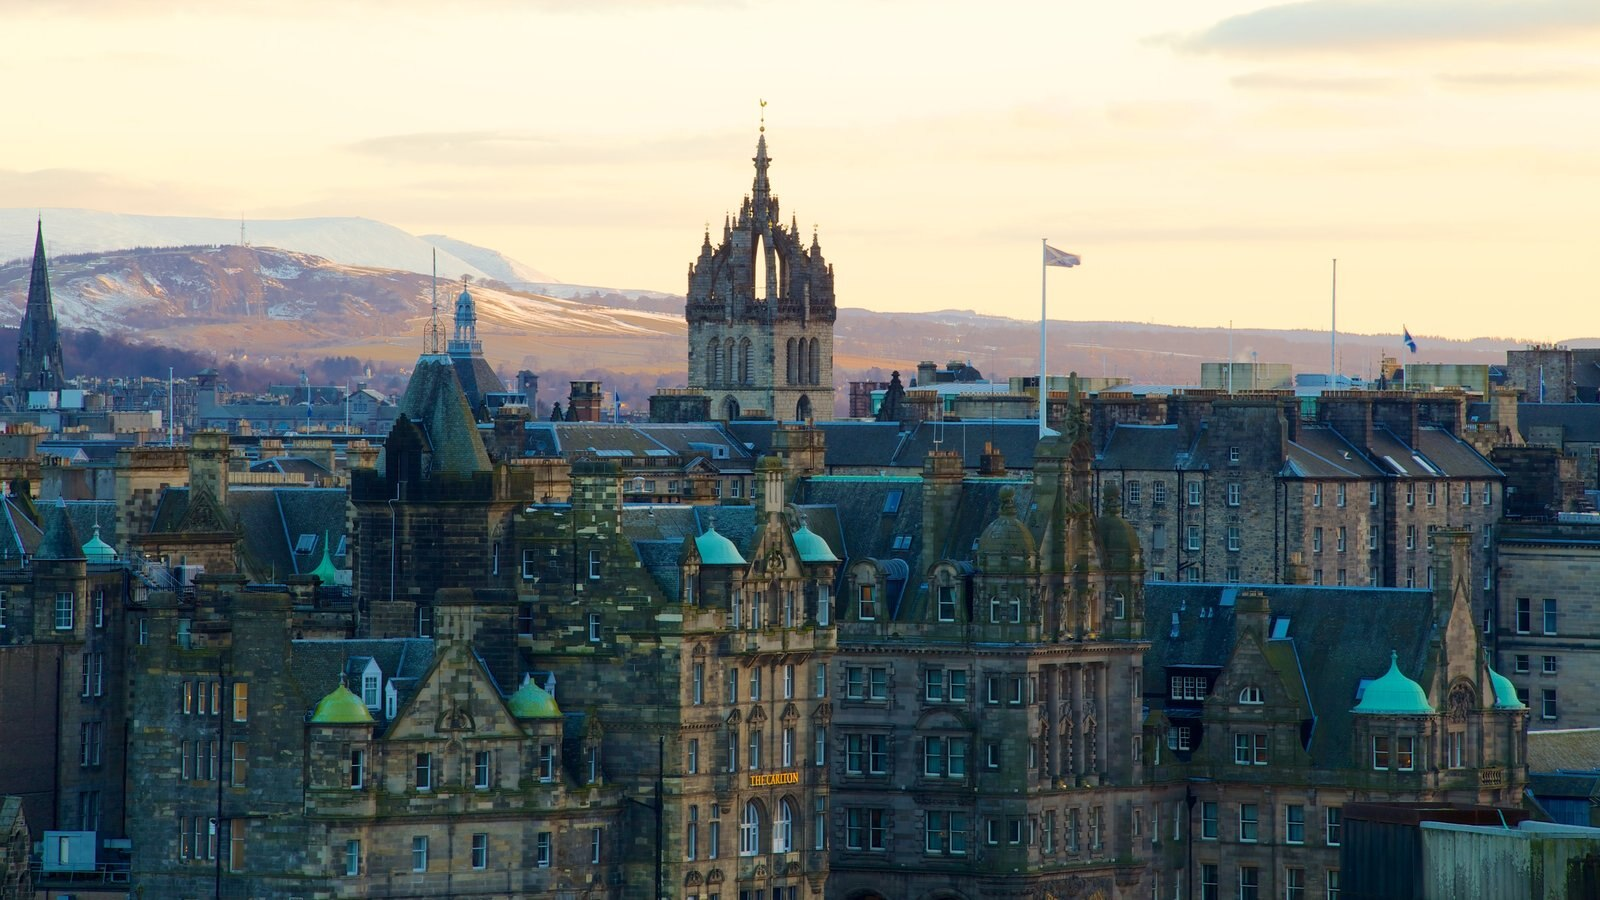 St. Giles\\\' Cathedral which includes a city, a church or cathedral and heritage architecture